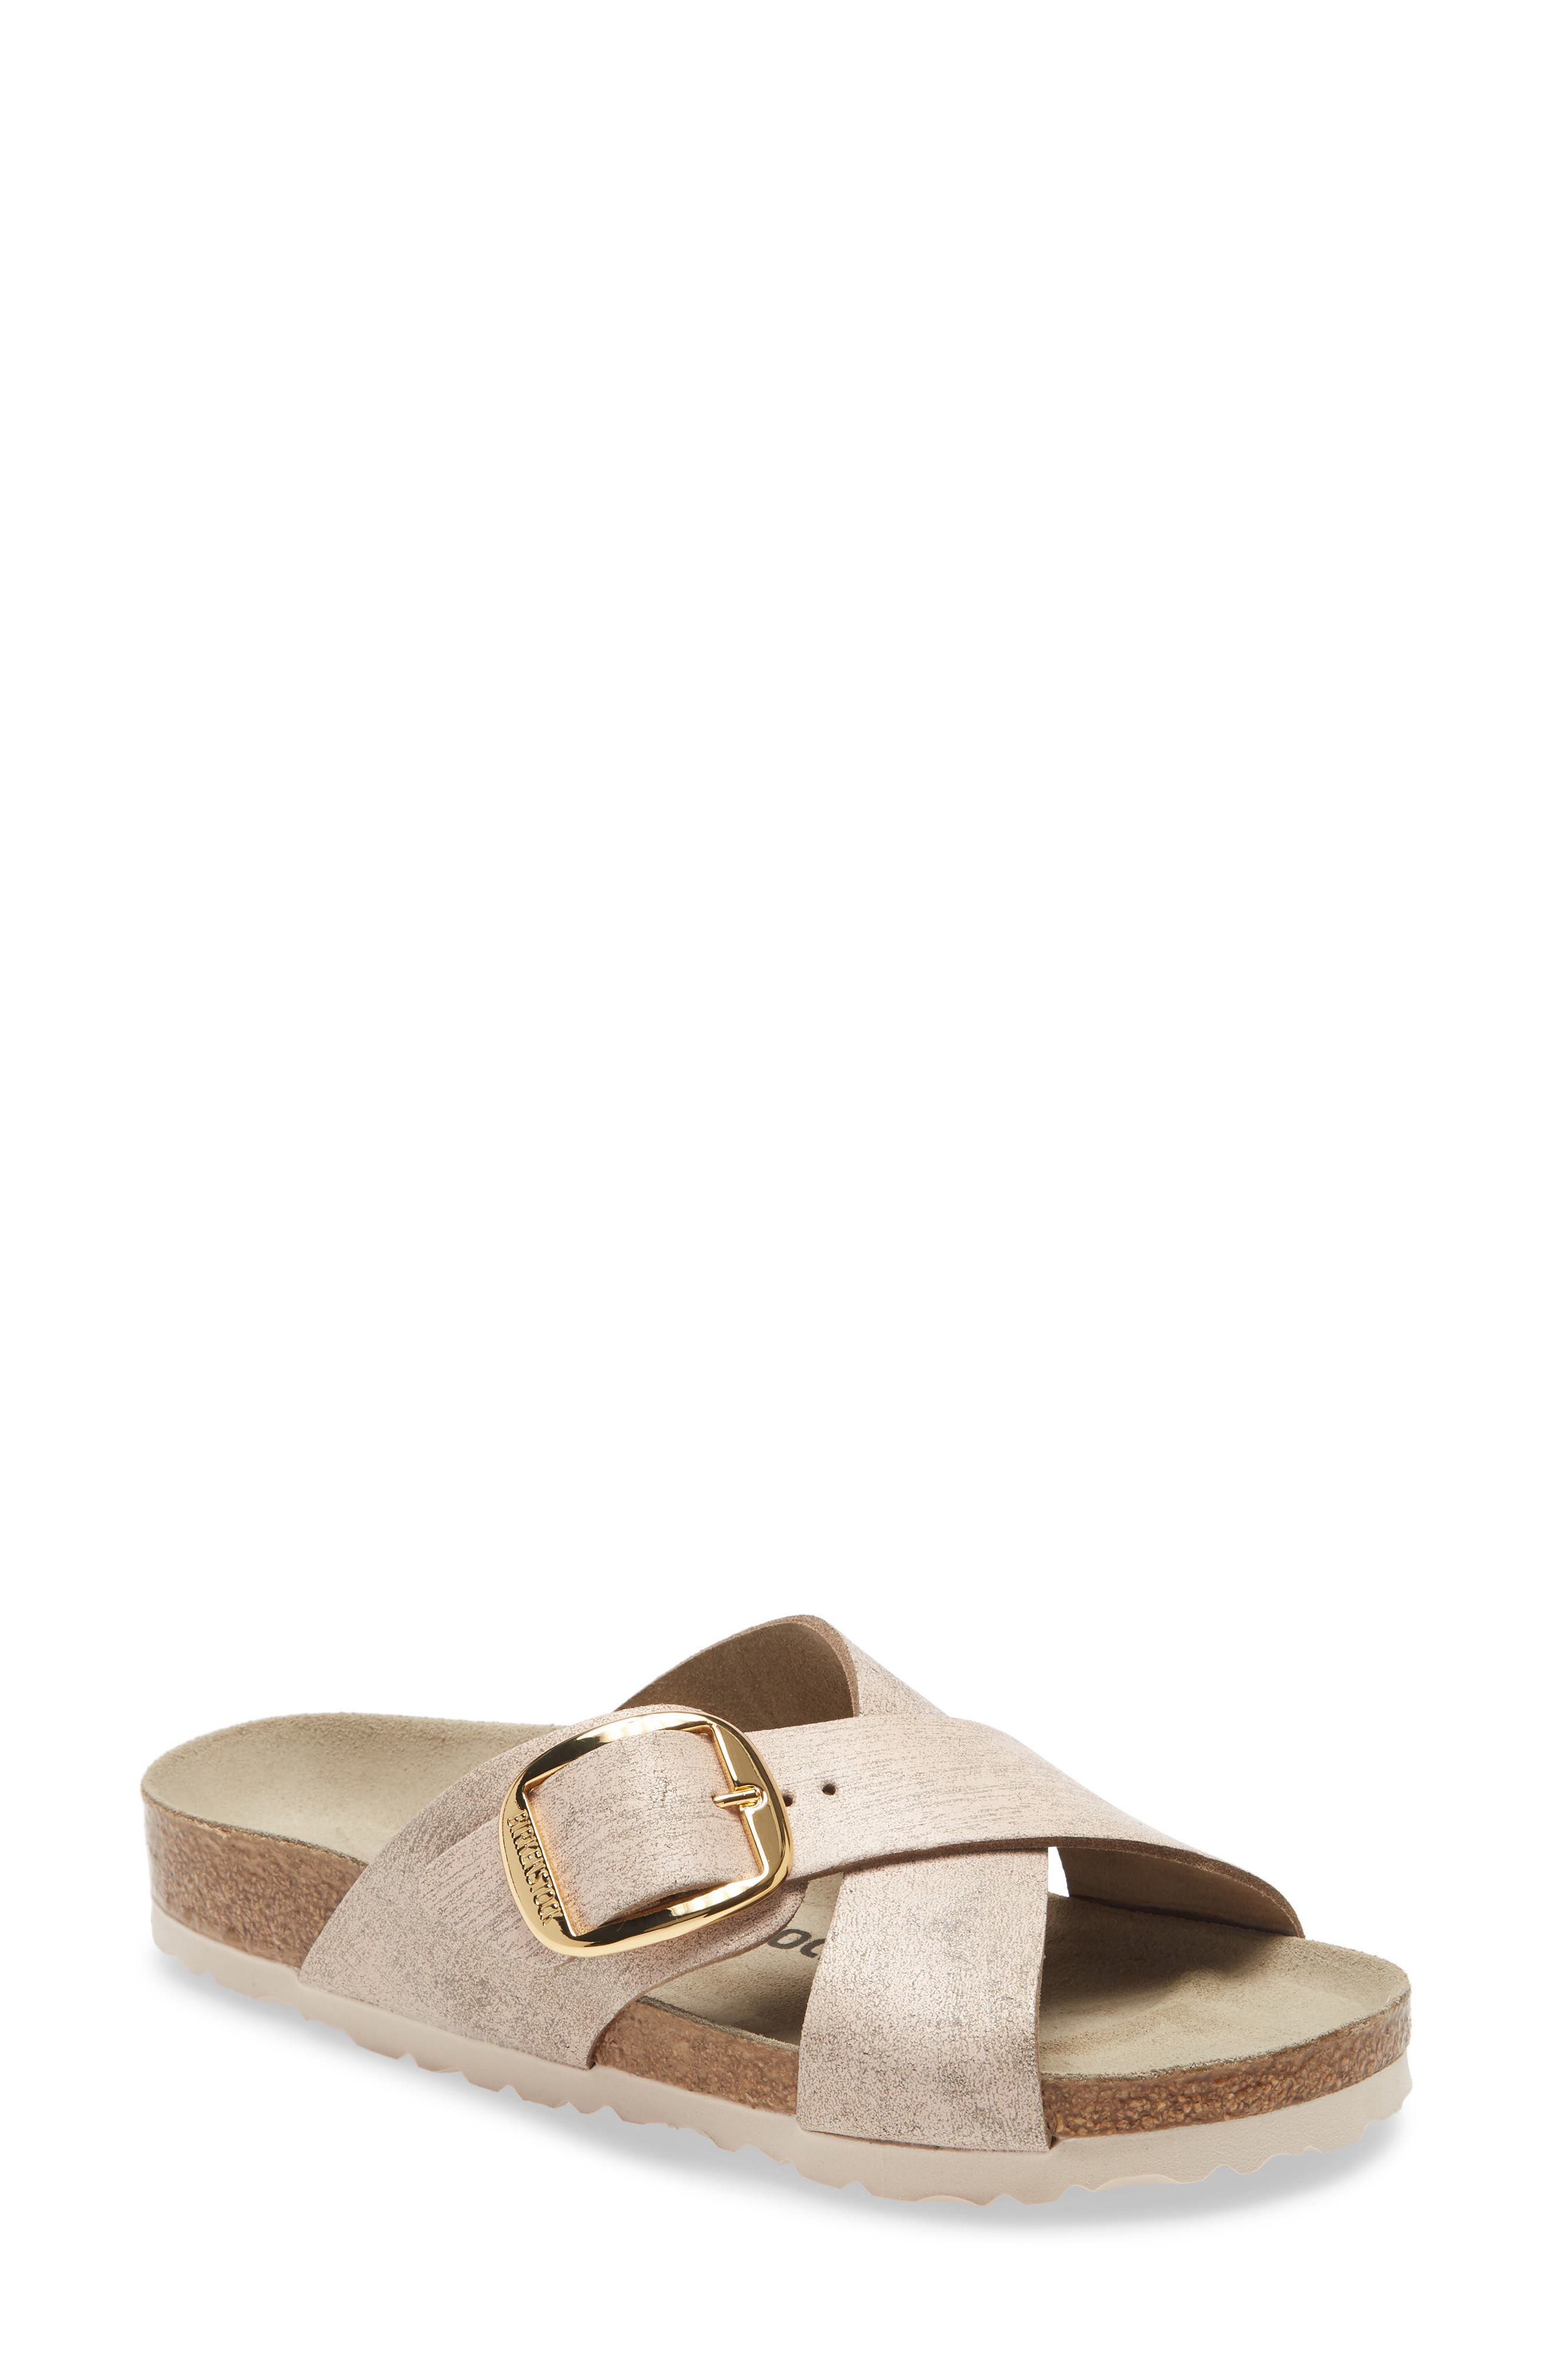 Women's Shoes | Nordstrom